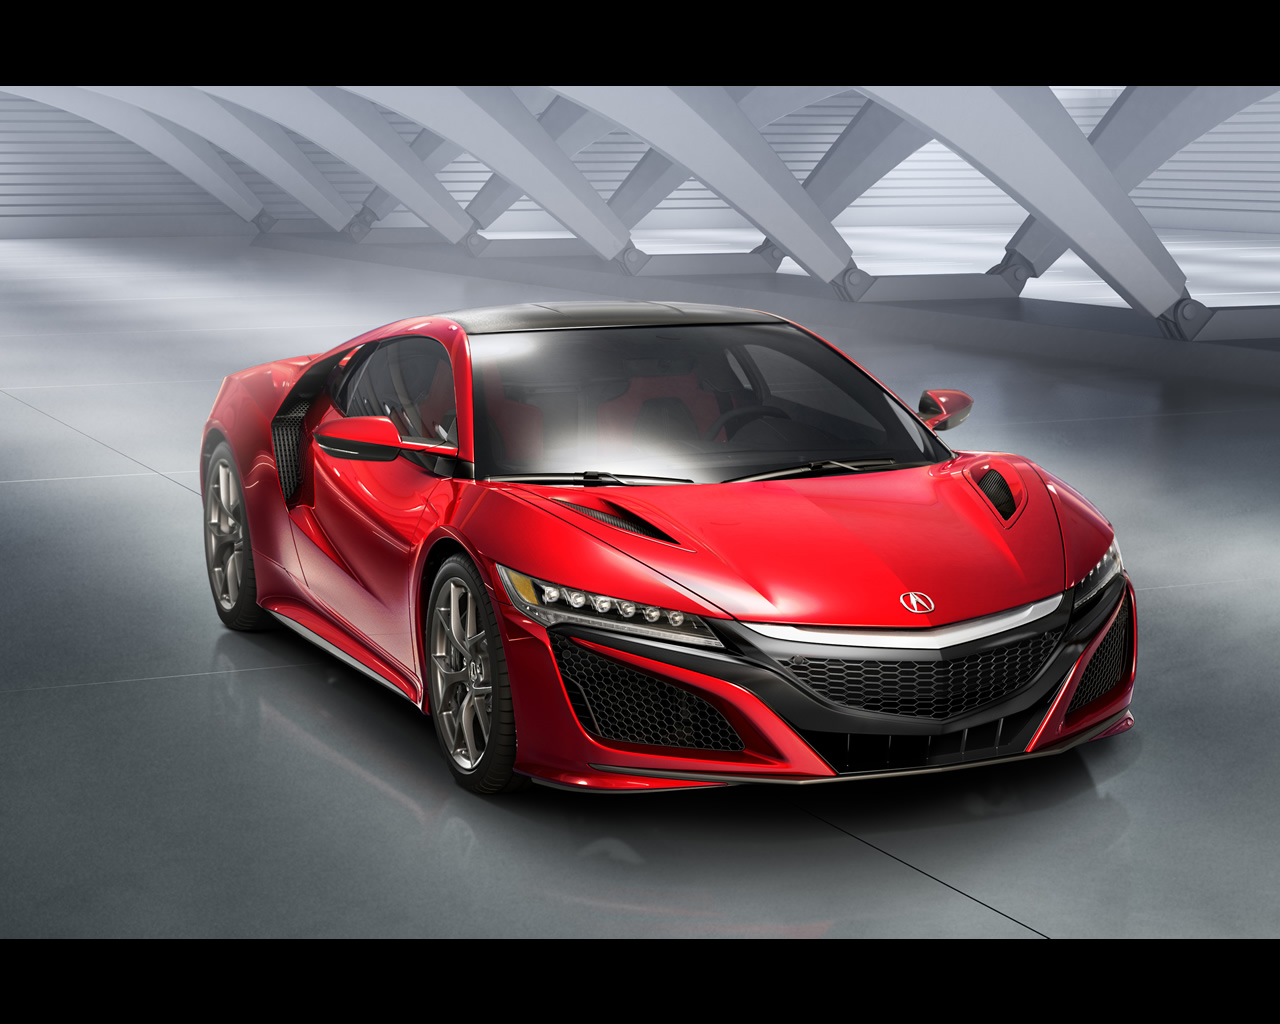 honda acura nsx supercar 2015. Black Bedroom Furniture Sets. Home Design Ideas